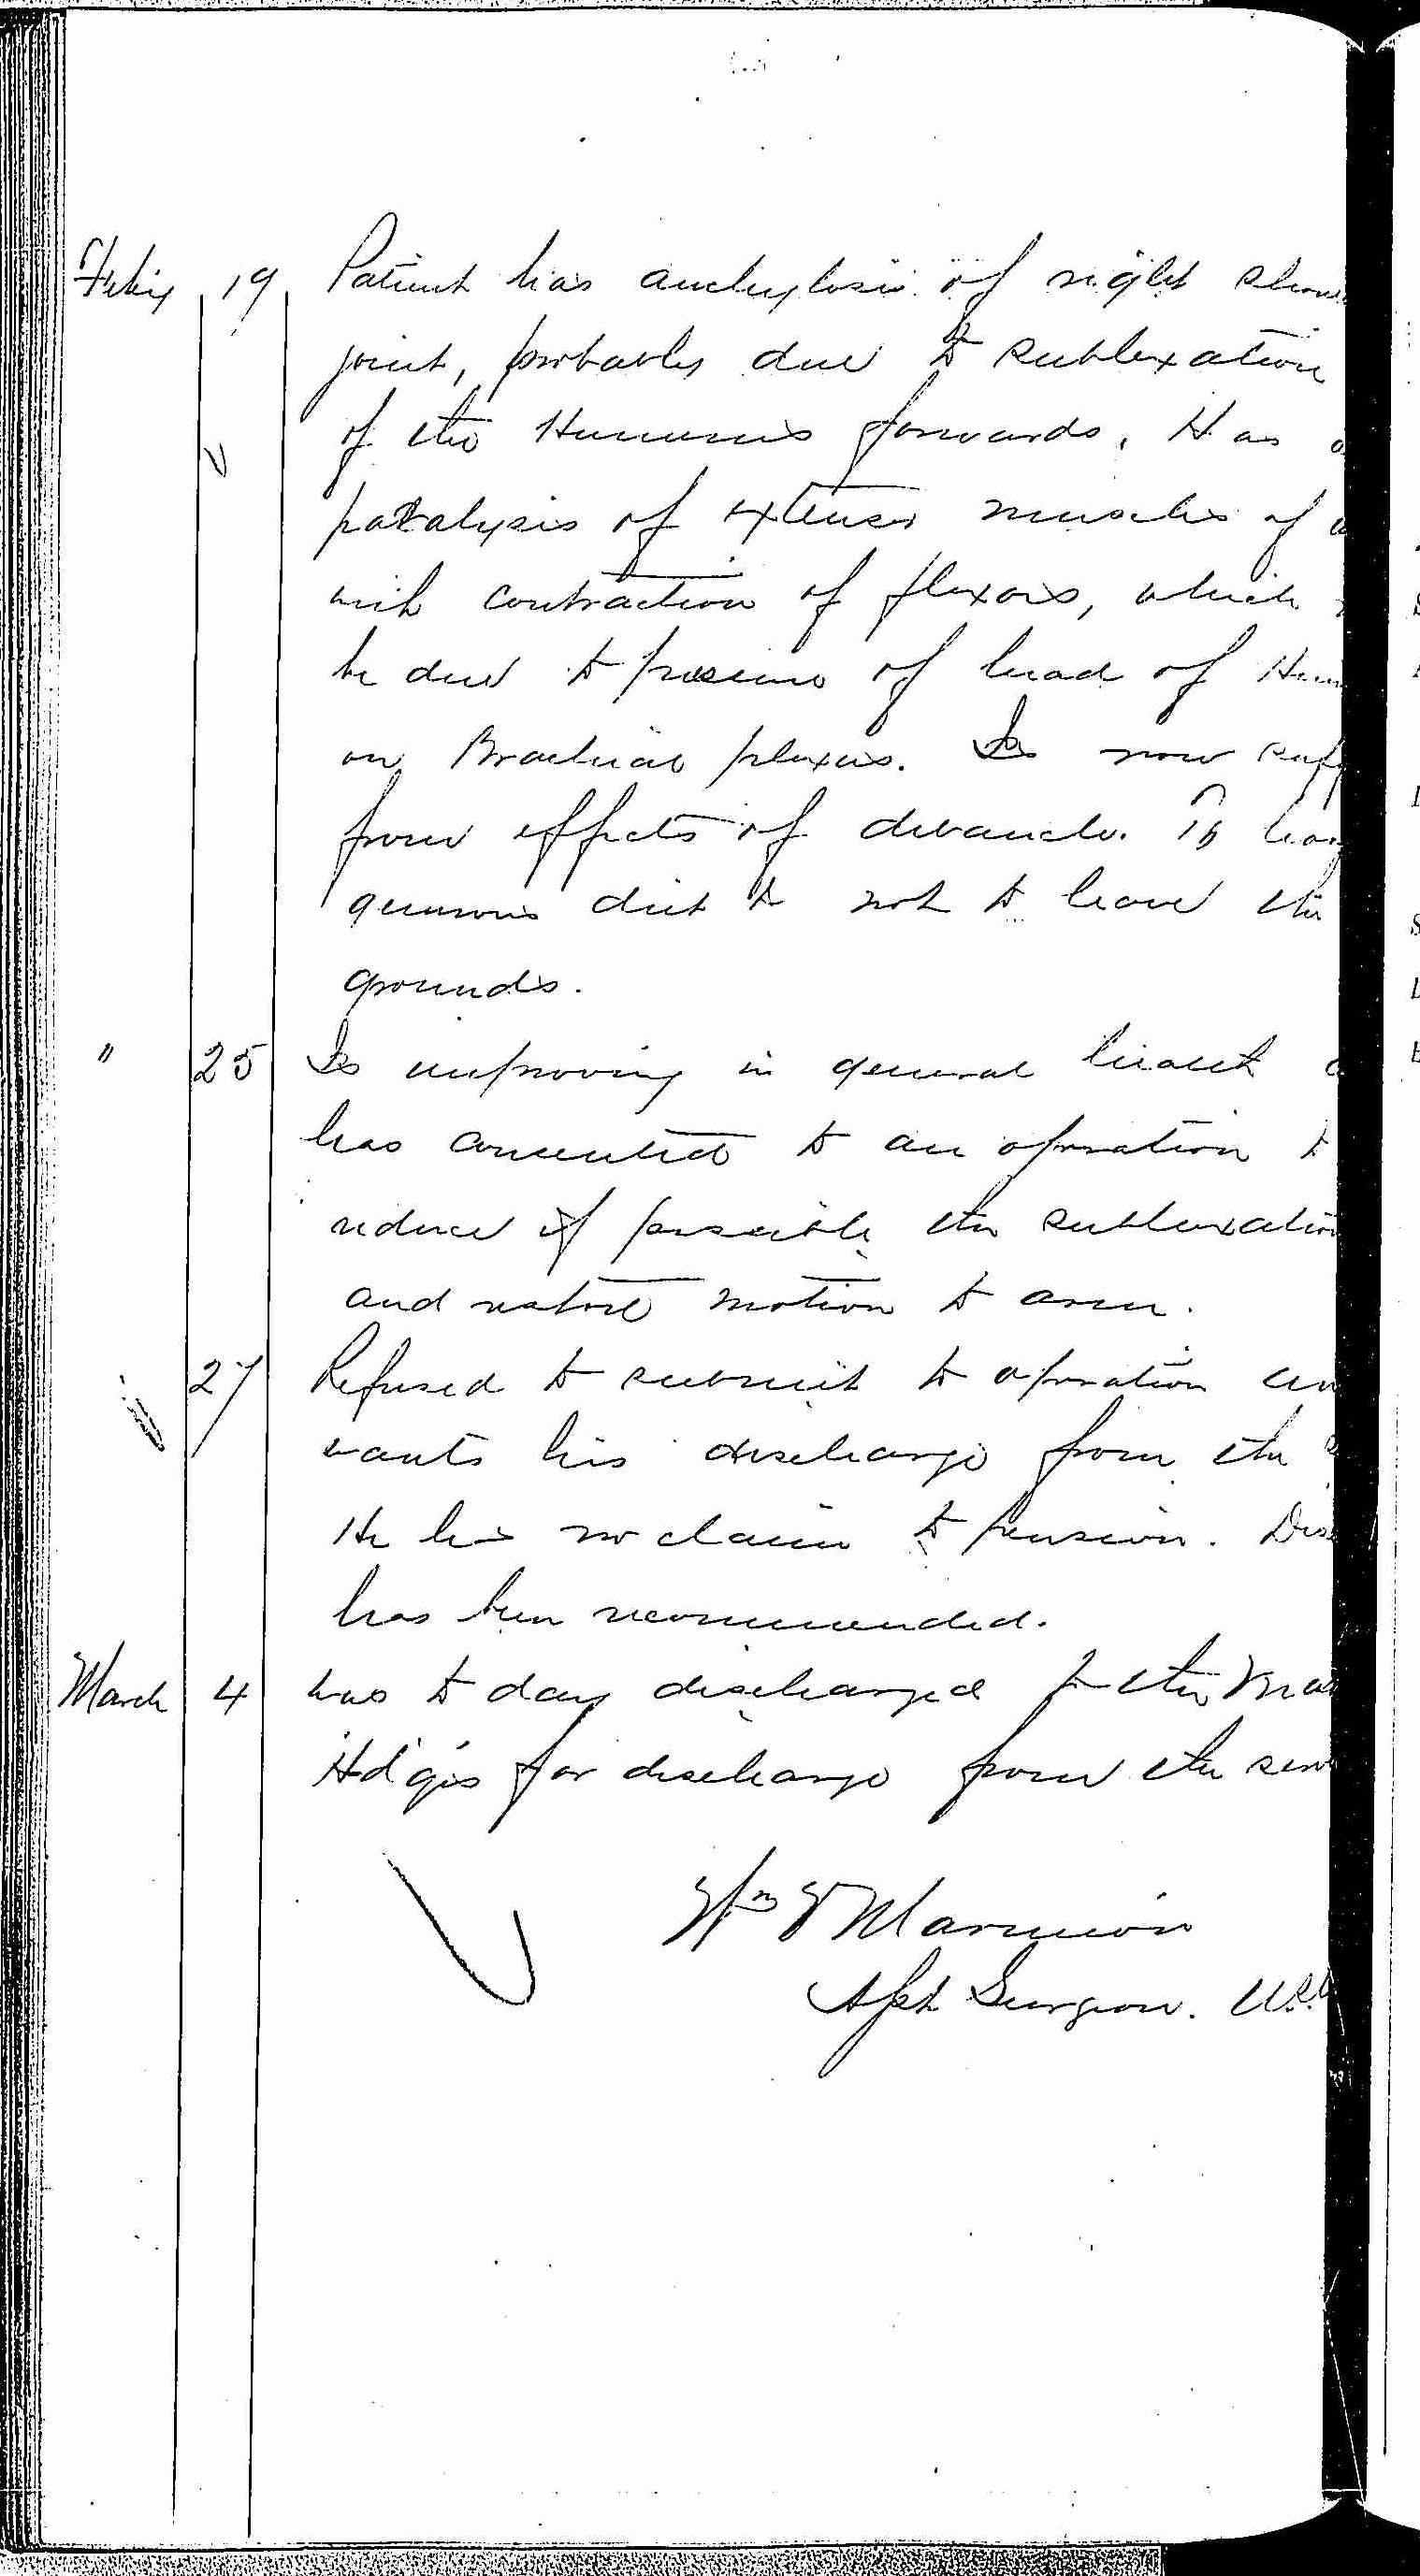 Entry for Michael Craemer (page 2 of 2) in the log Hospital Tickets and Case Papers - Naval Hospital - Washington, D.C. - 1868-69